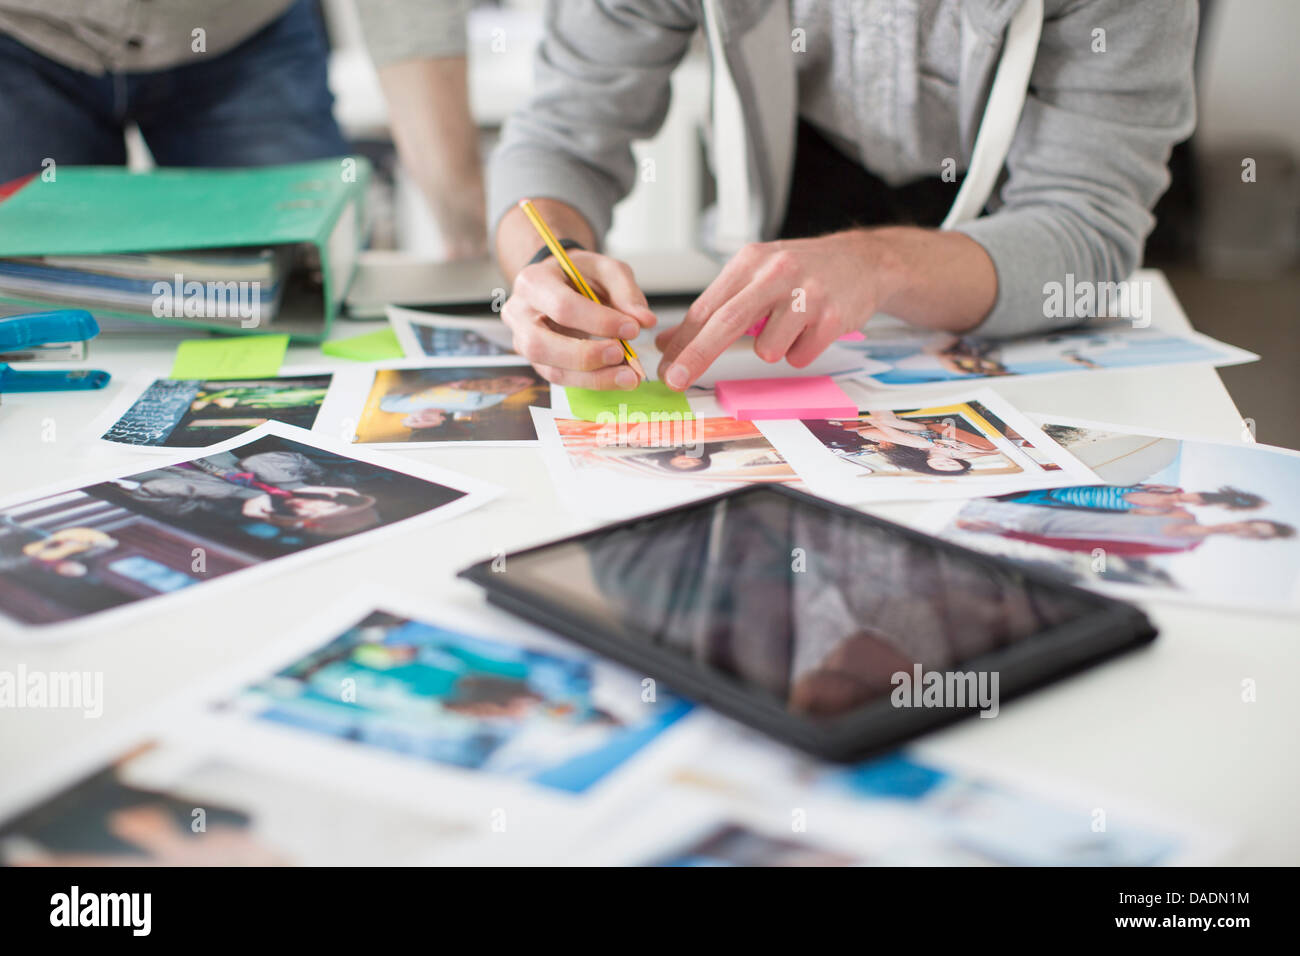 Young man making notes on desk of photographs with digital tablet in creative office - Stock Image